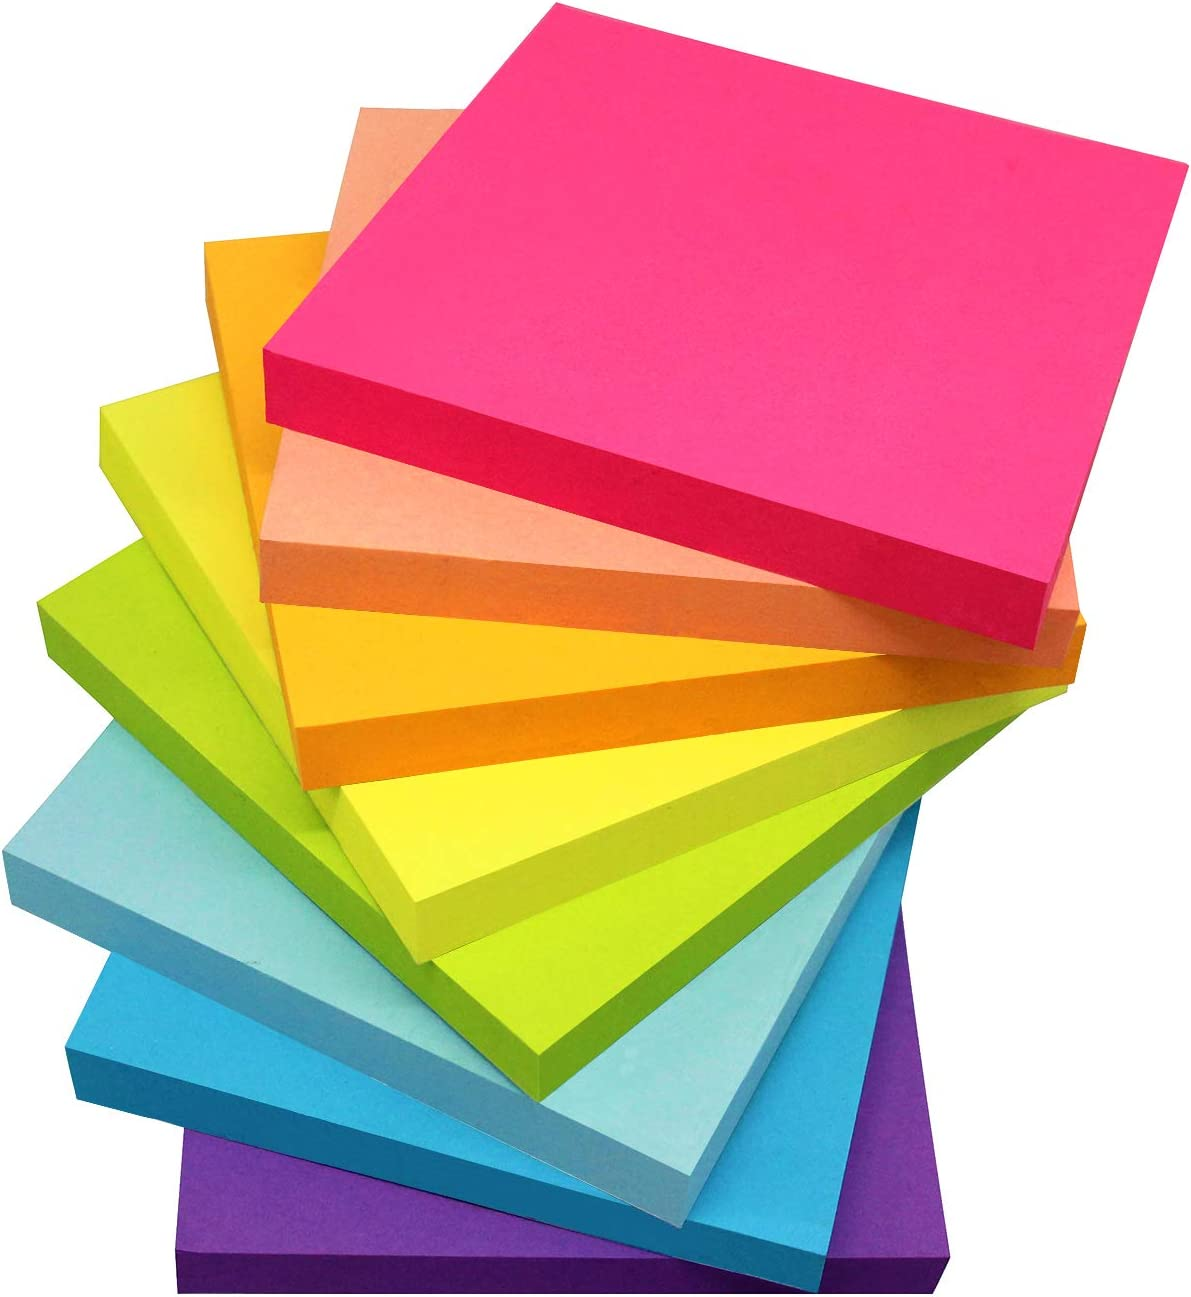 Sticky Notes 3x3 Inches,Bright Colors Self-Stick Pads, Easy to Post for Home, Office, Notebook, 16 Pads/Pack